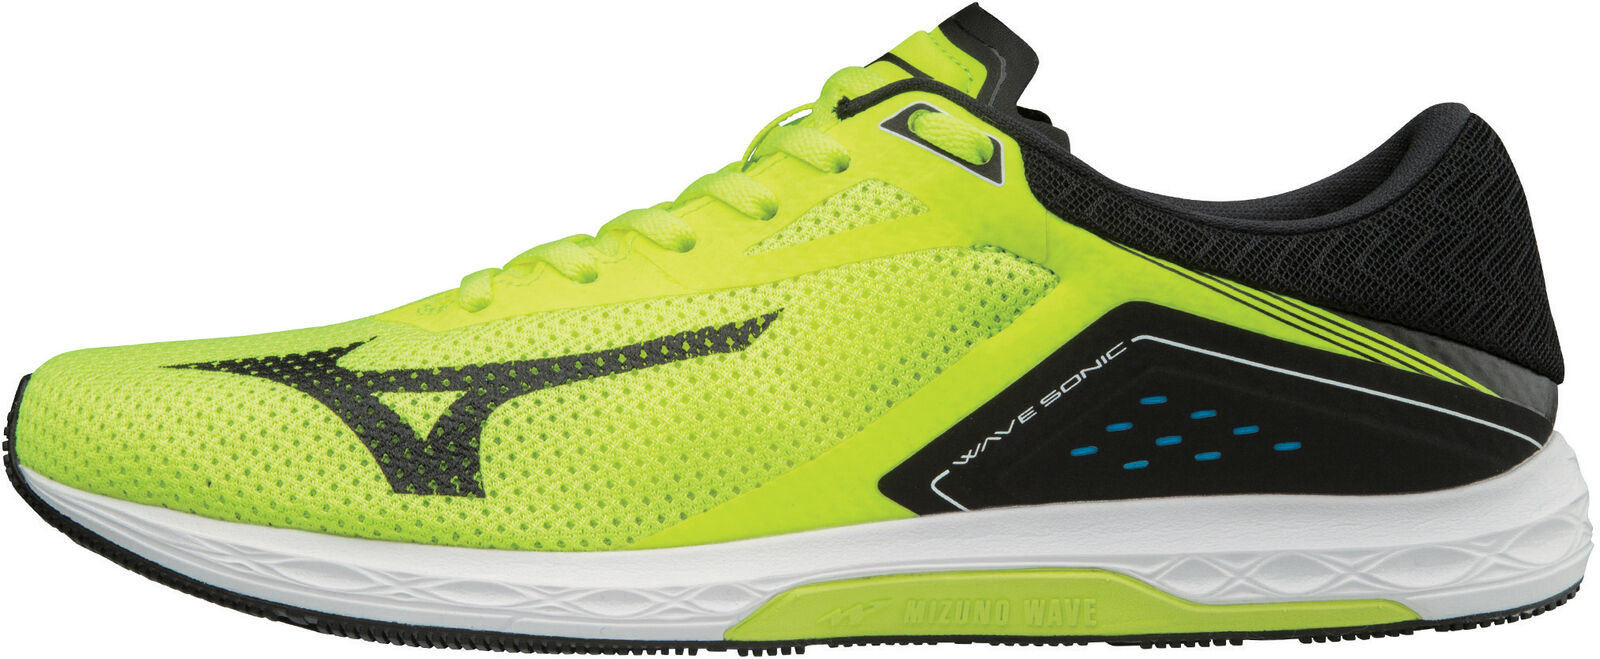 Wave Sonic Mens Running shoes - Yellow